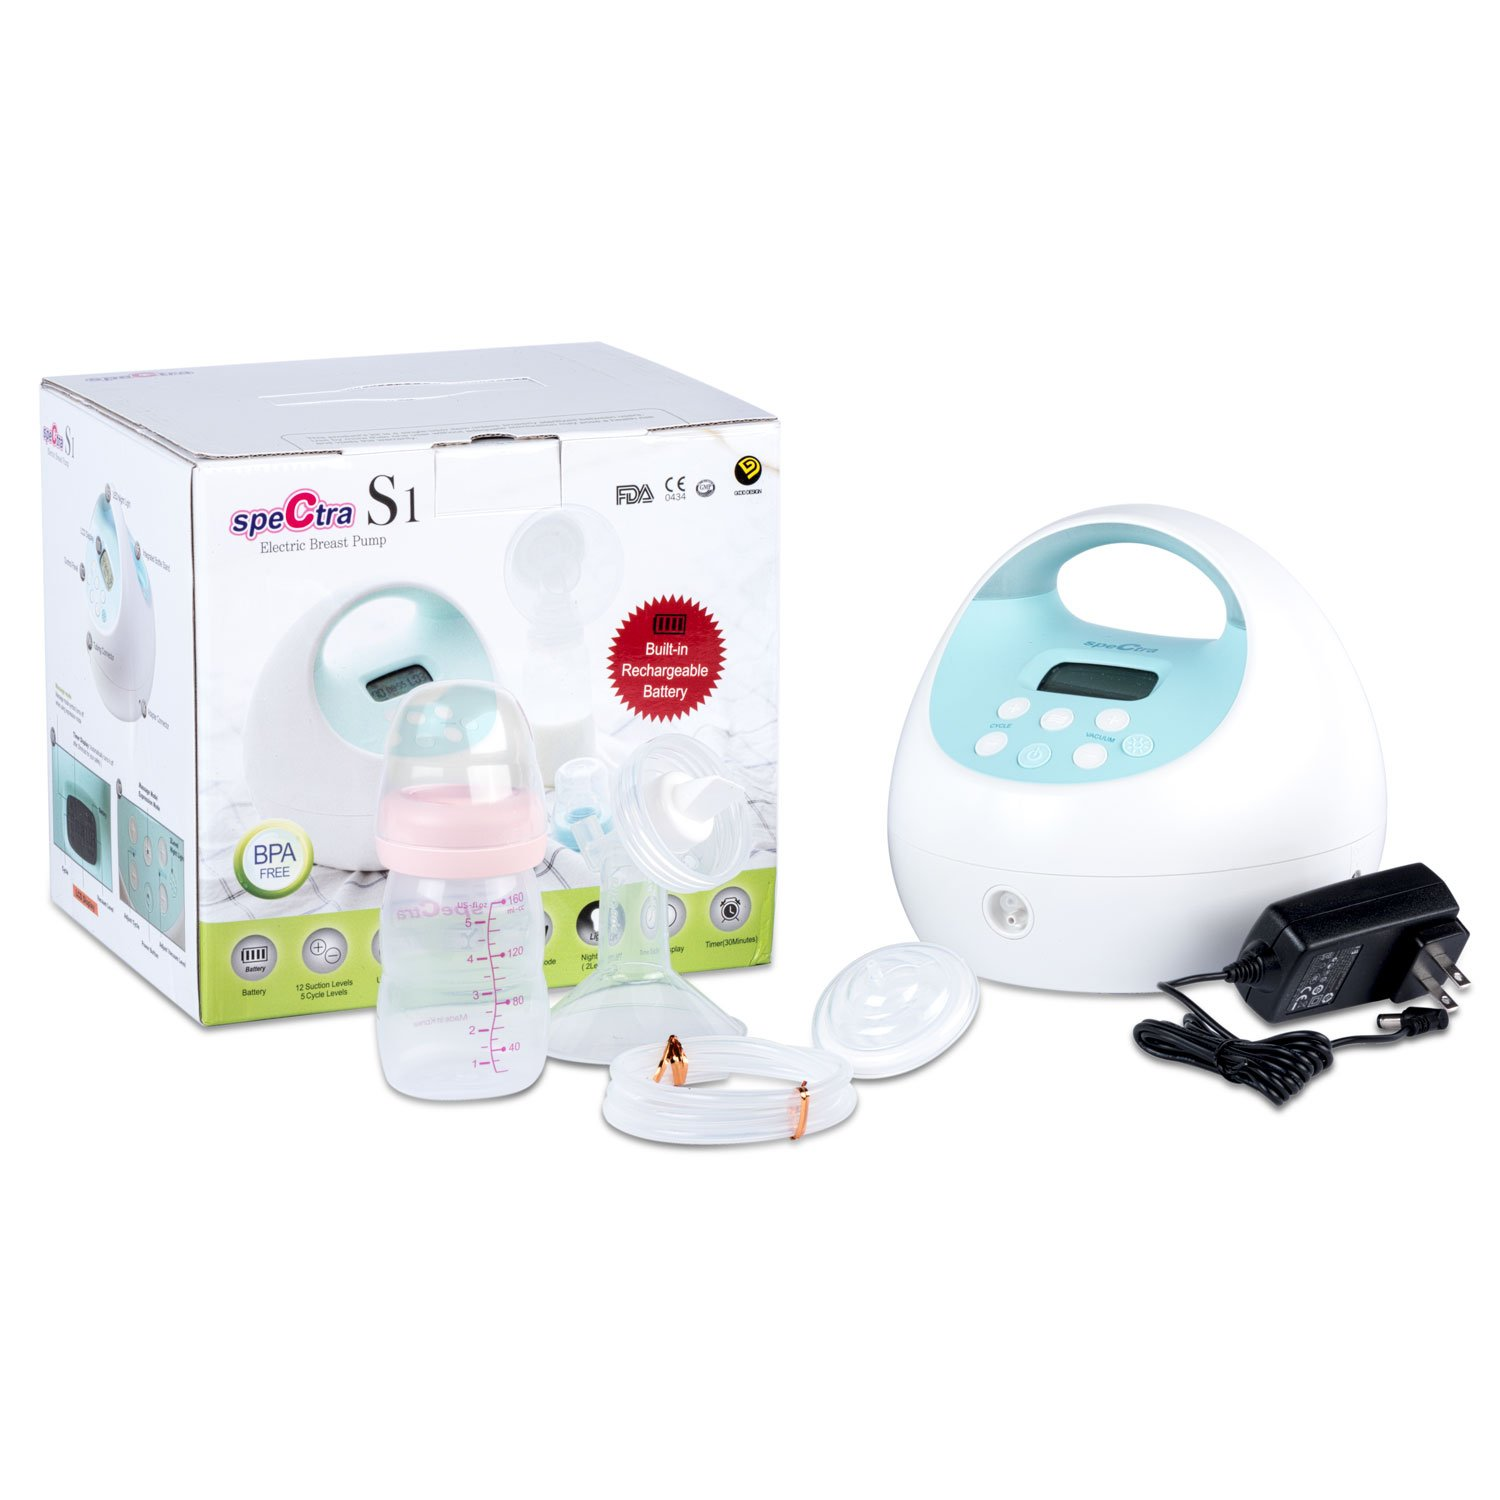 Spectra Baby USA - S1 Hospital Grade Double/Single Electric Breast Pump Set - With Black Tote and 1 Set of Bottles